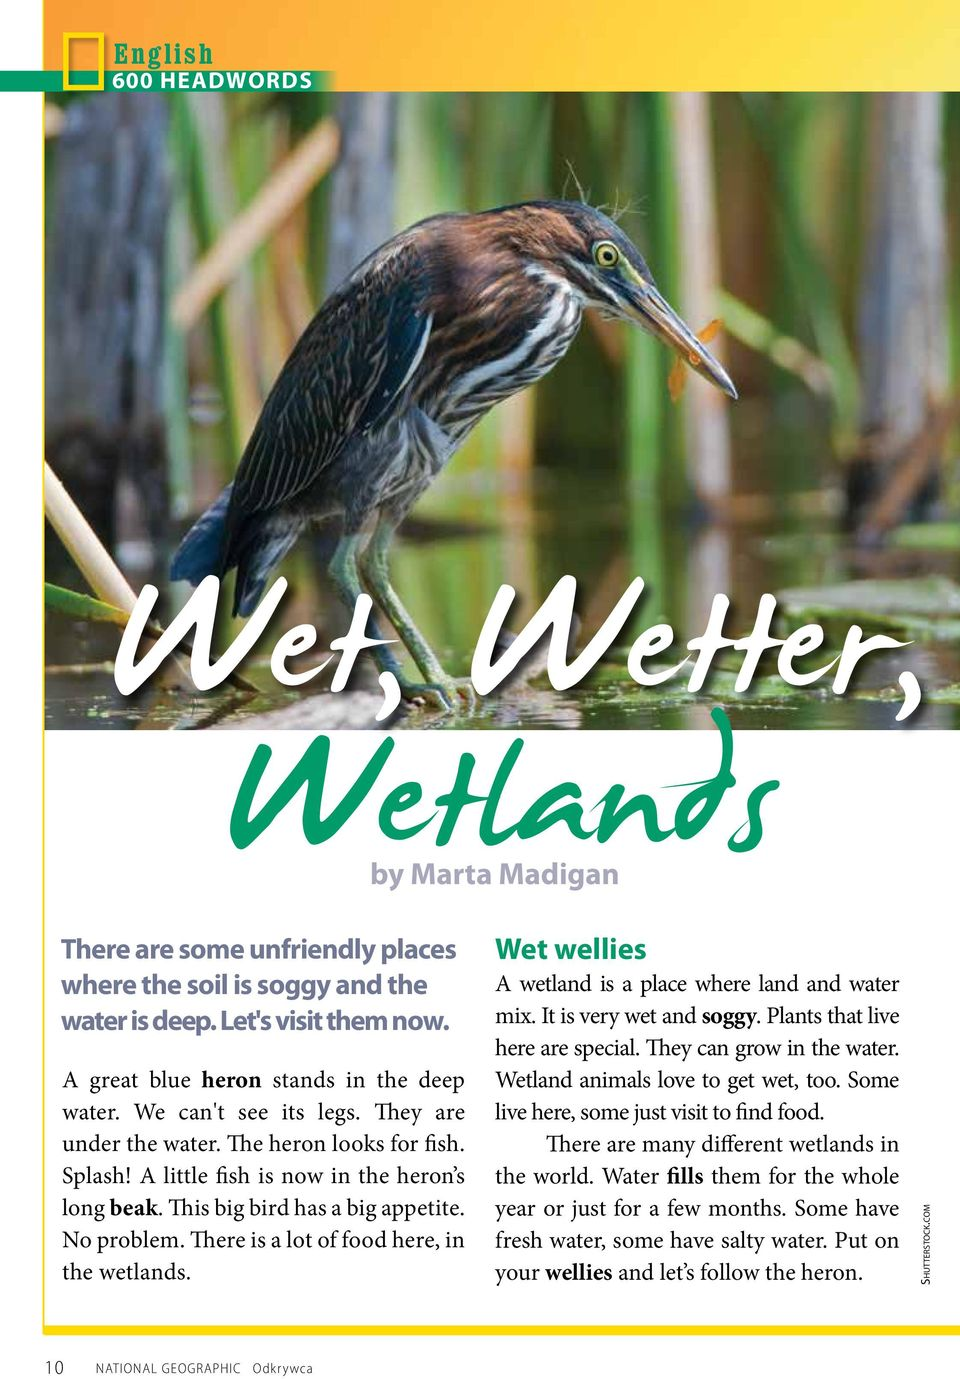 There is a lot of food here, in the wetlands. Wet wellies A wetland is a place where land and water mix. It is very wet and soggy. Plants that live here are special. They can grow in the water.